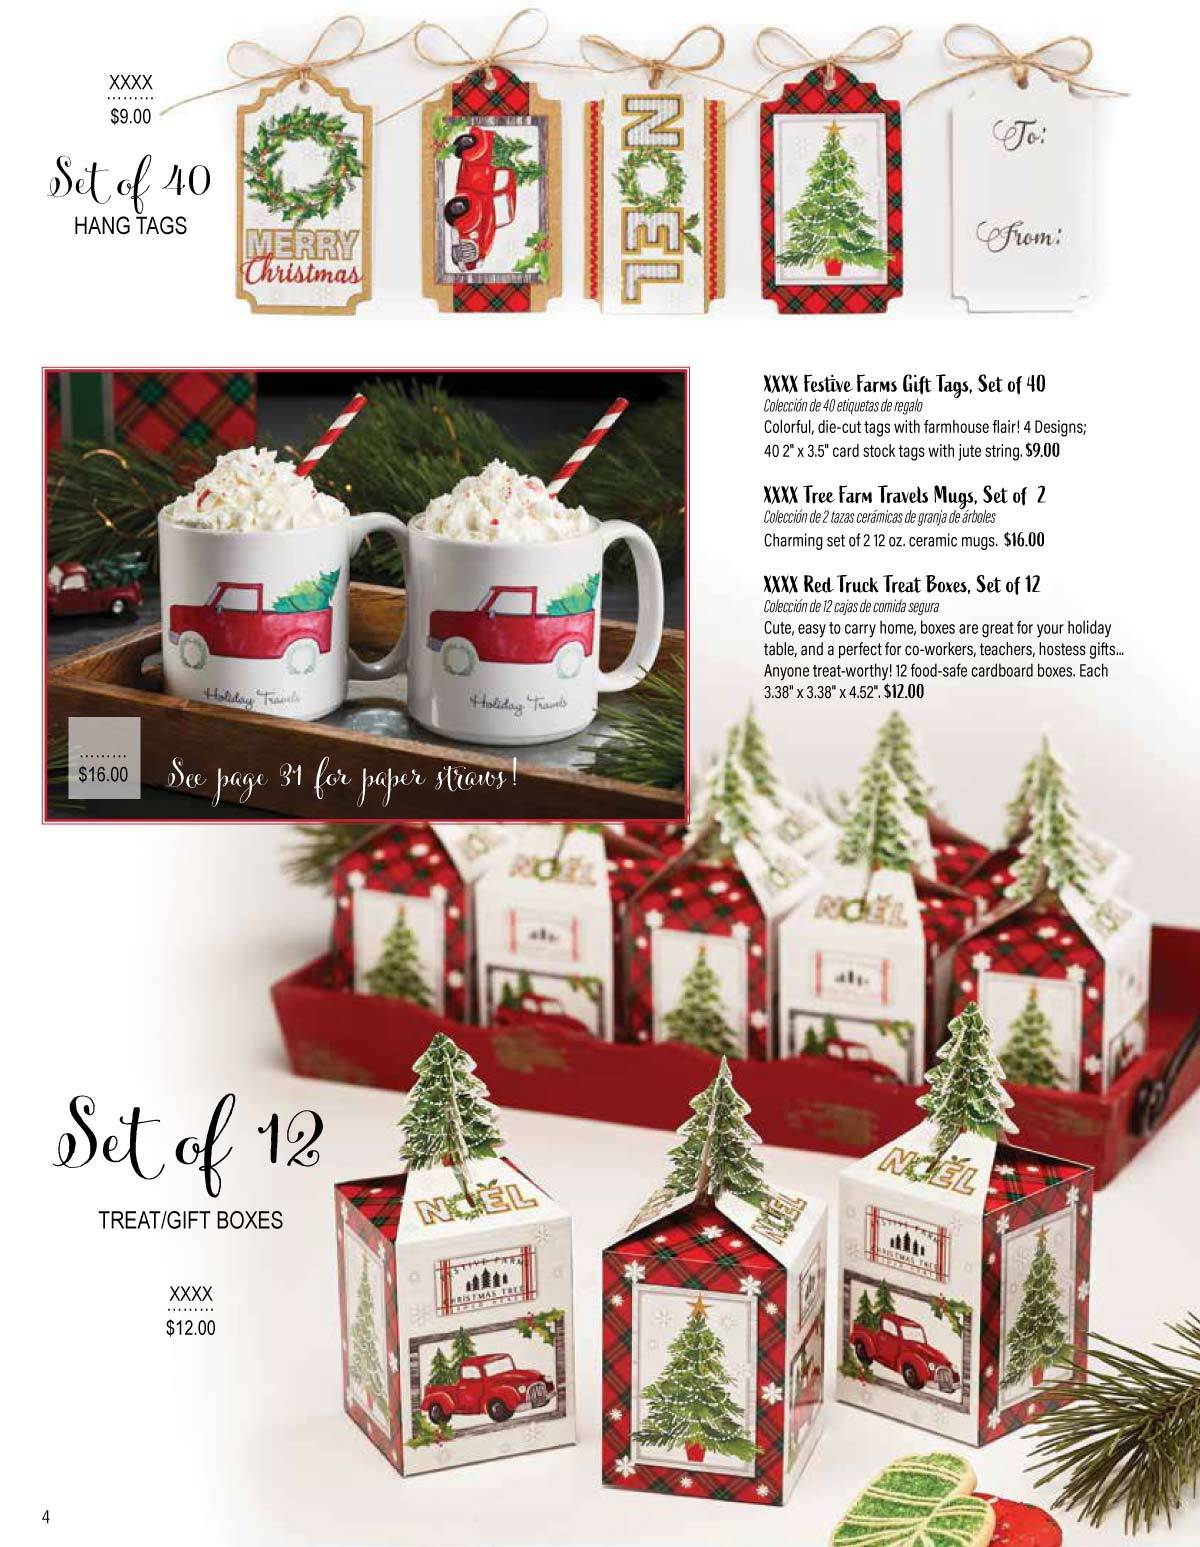 Christmas Fundraisers For Schools.Winter Wonderland Gift Fundraising Brochure Up To 50 Profits